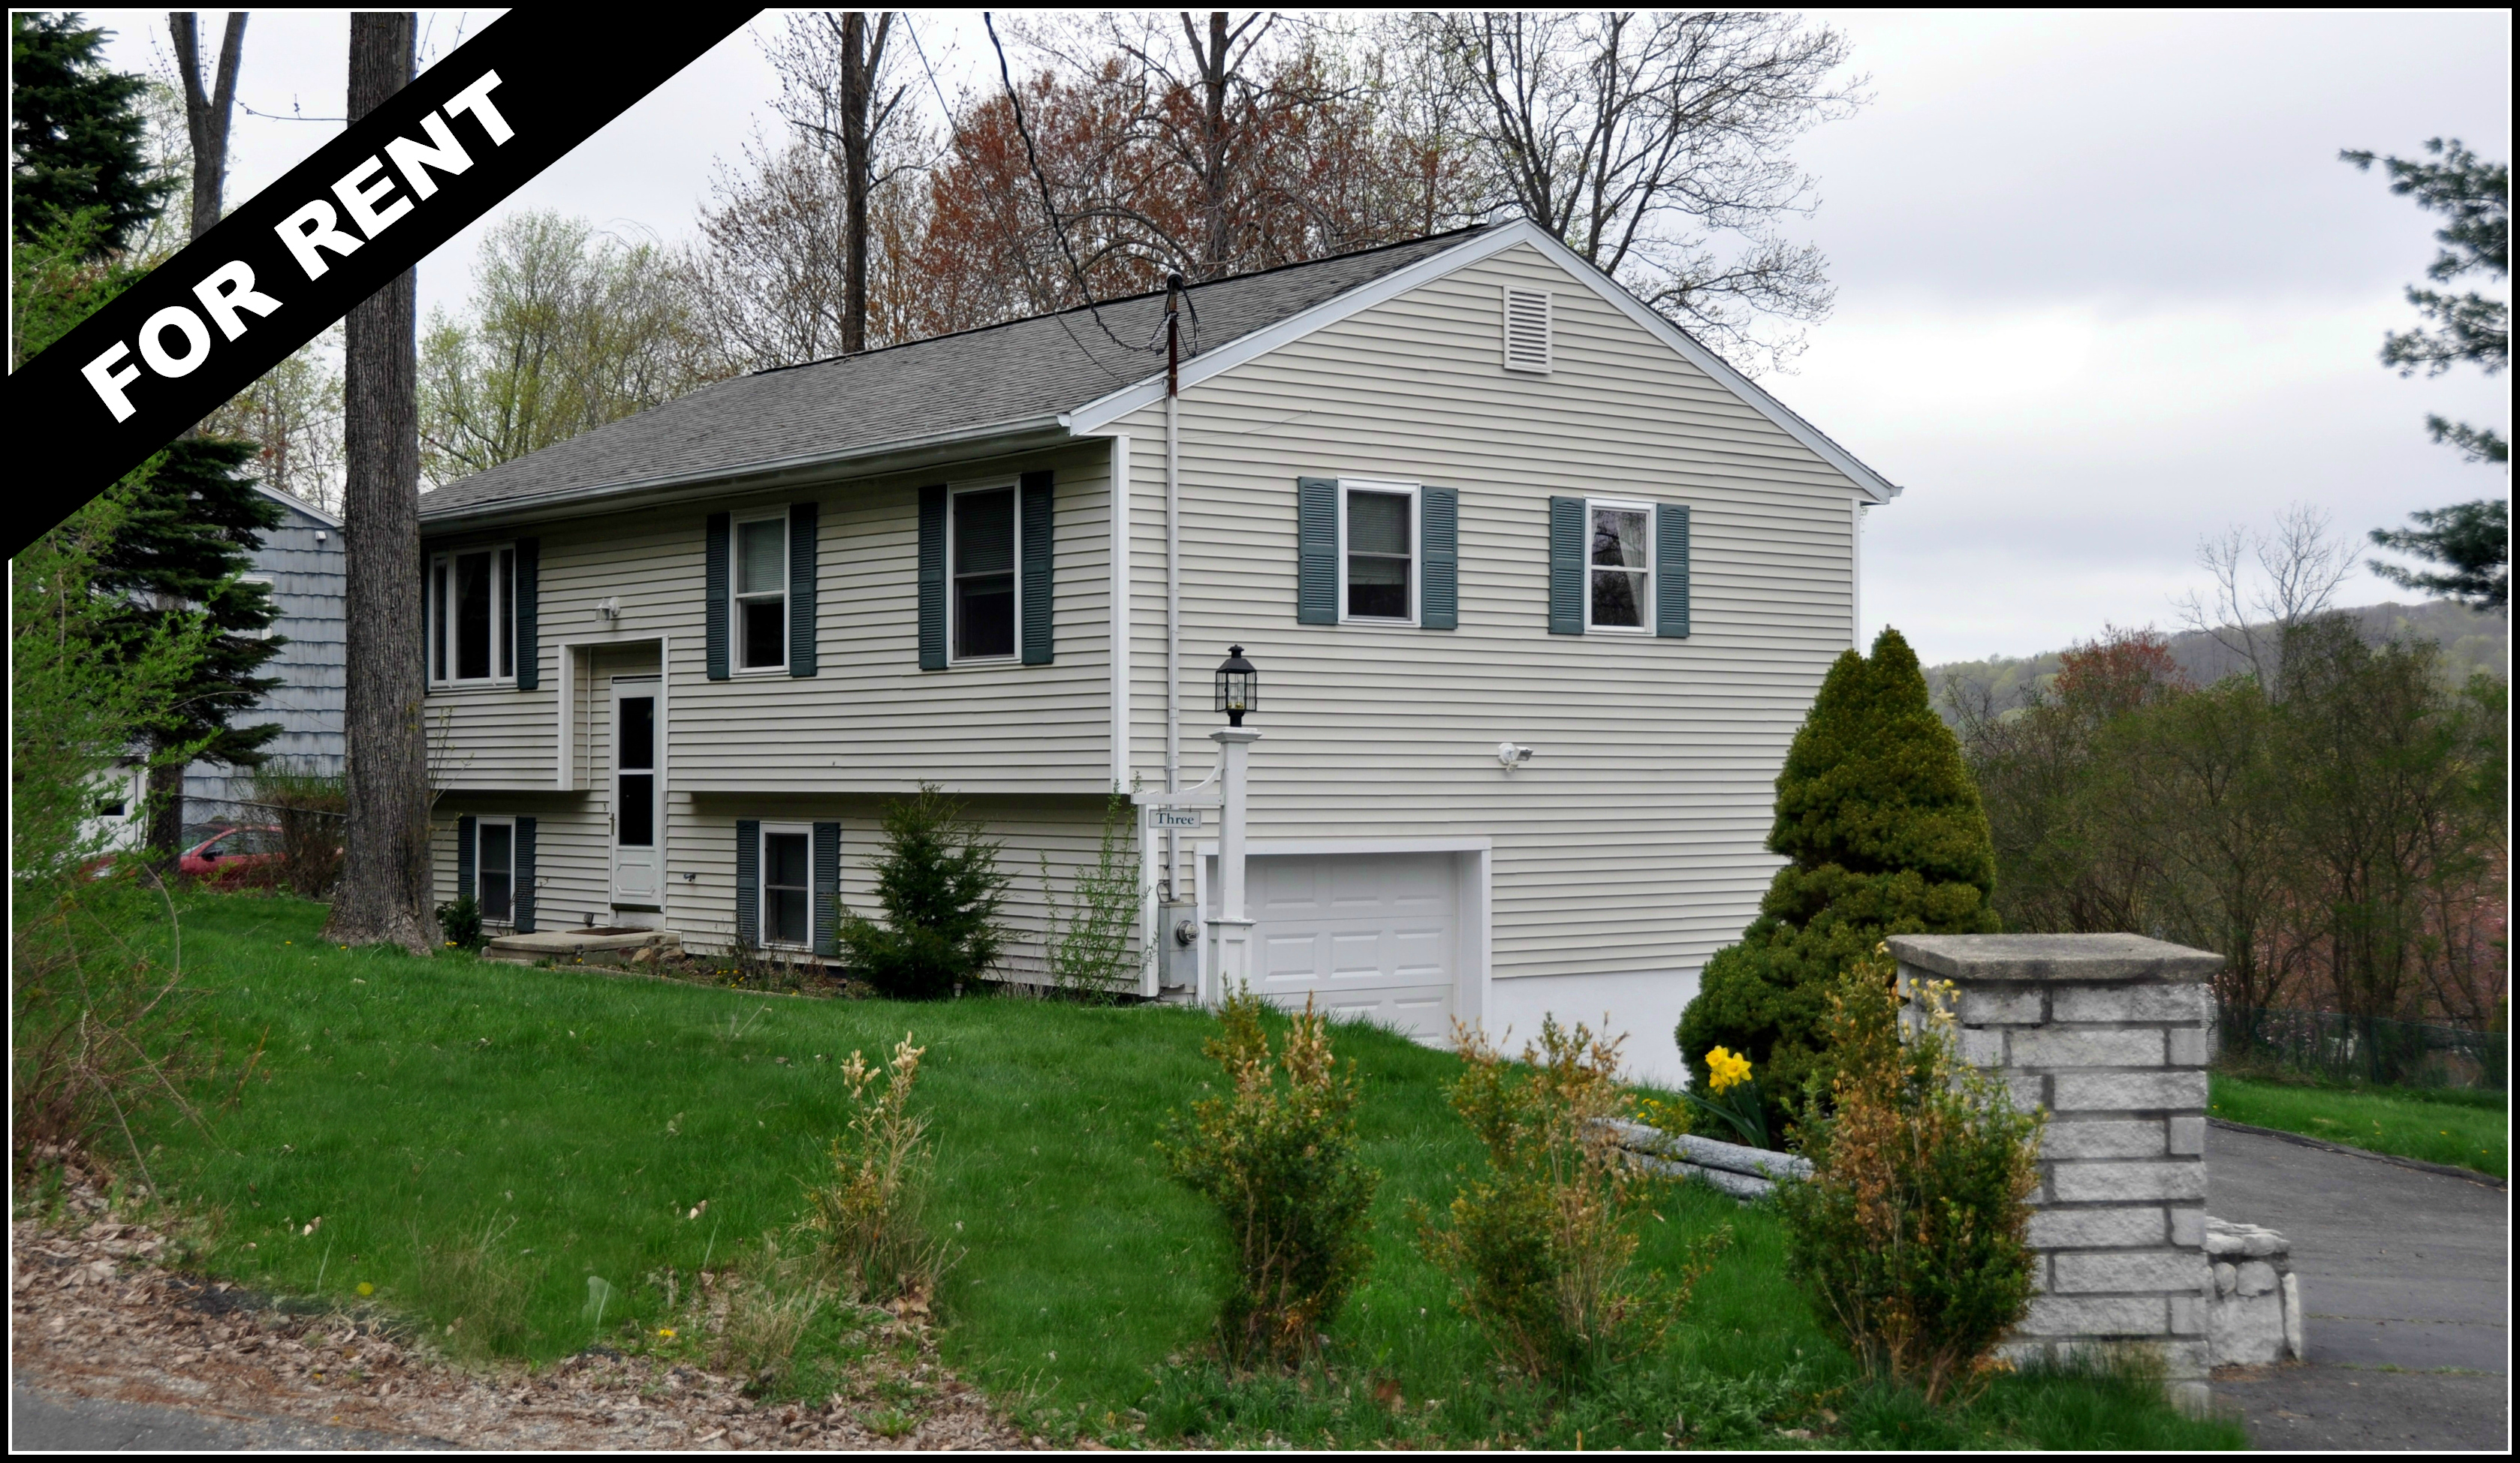 Fairfield County Rental 2000 Mo 3 BDRM W Garage For Lease Danbury CT